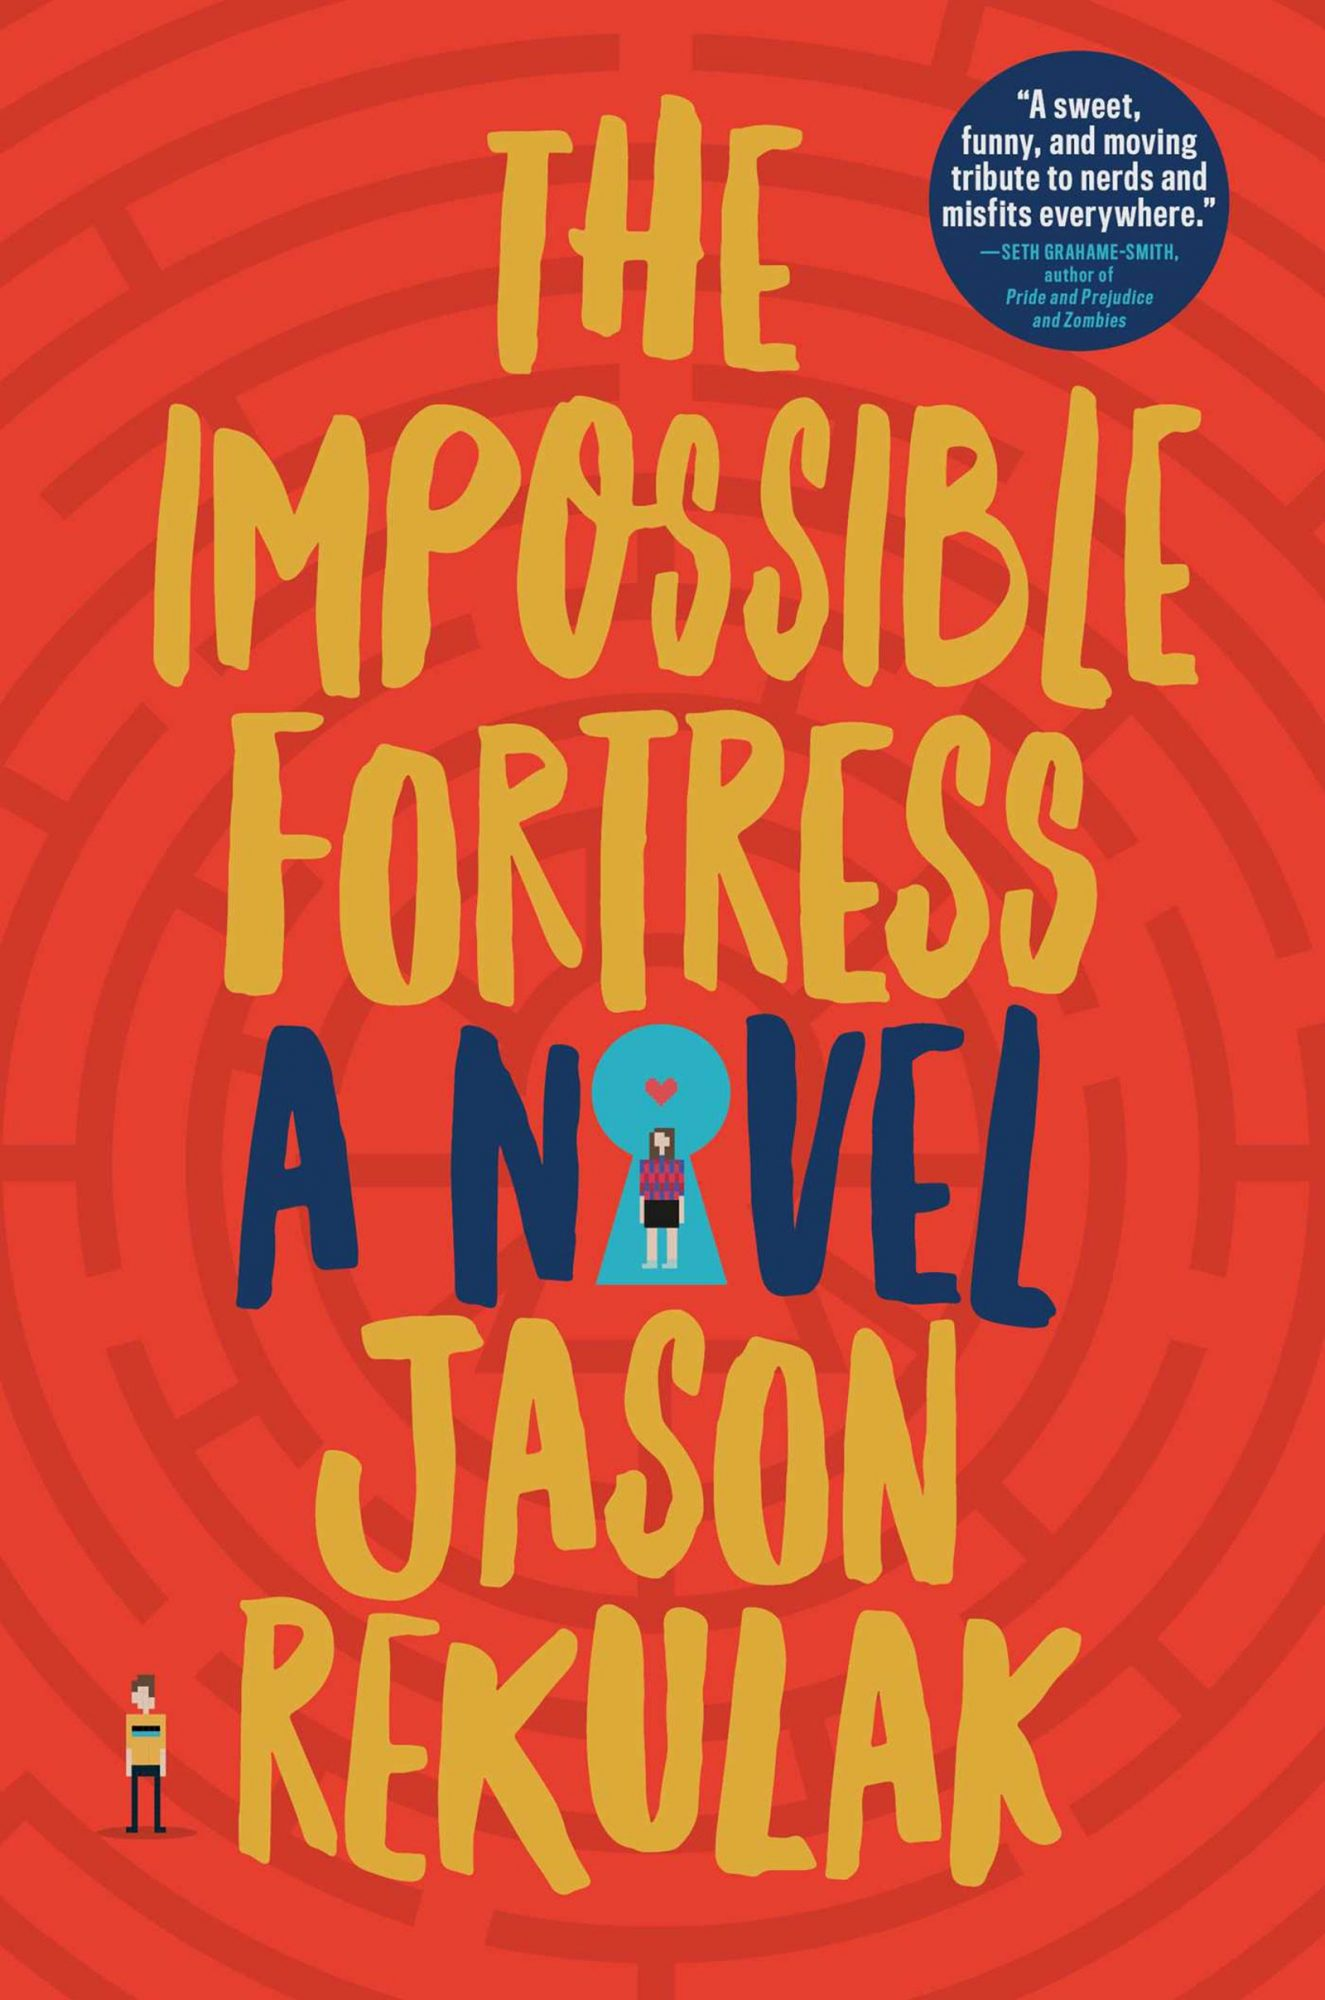 The Impossible Fortress (2/7/2017)by Jason Rekulak